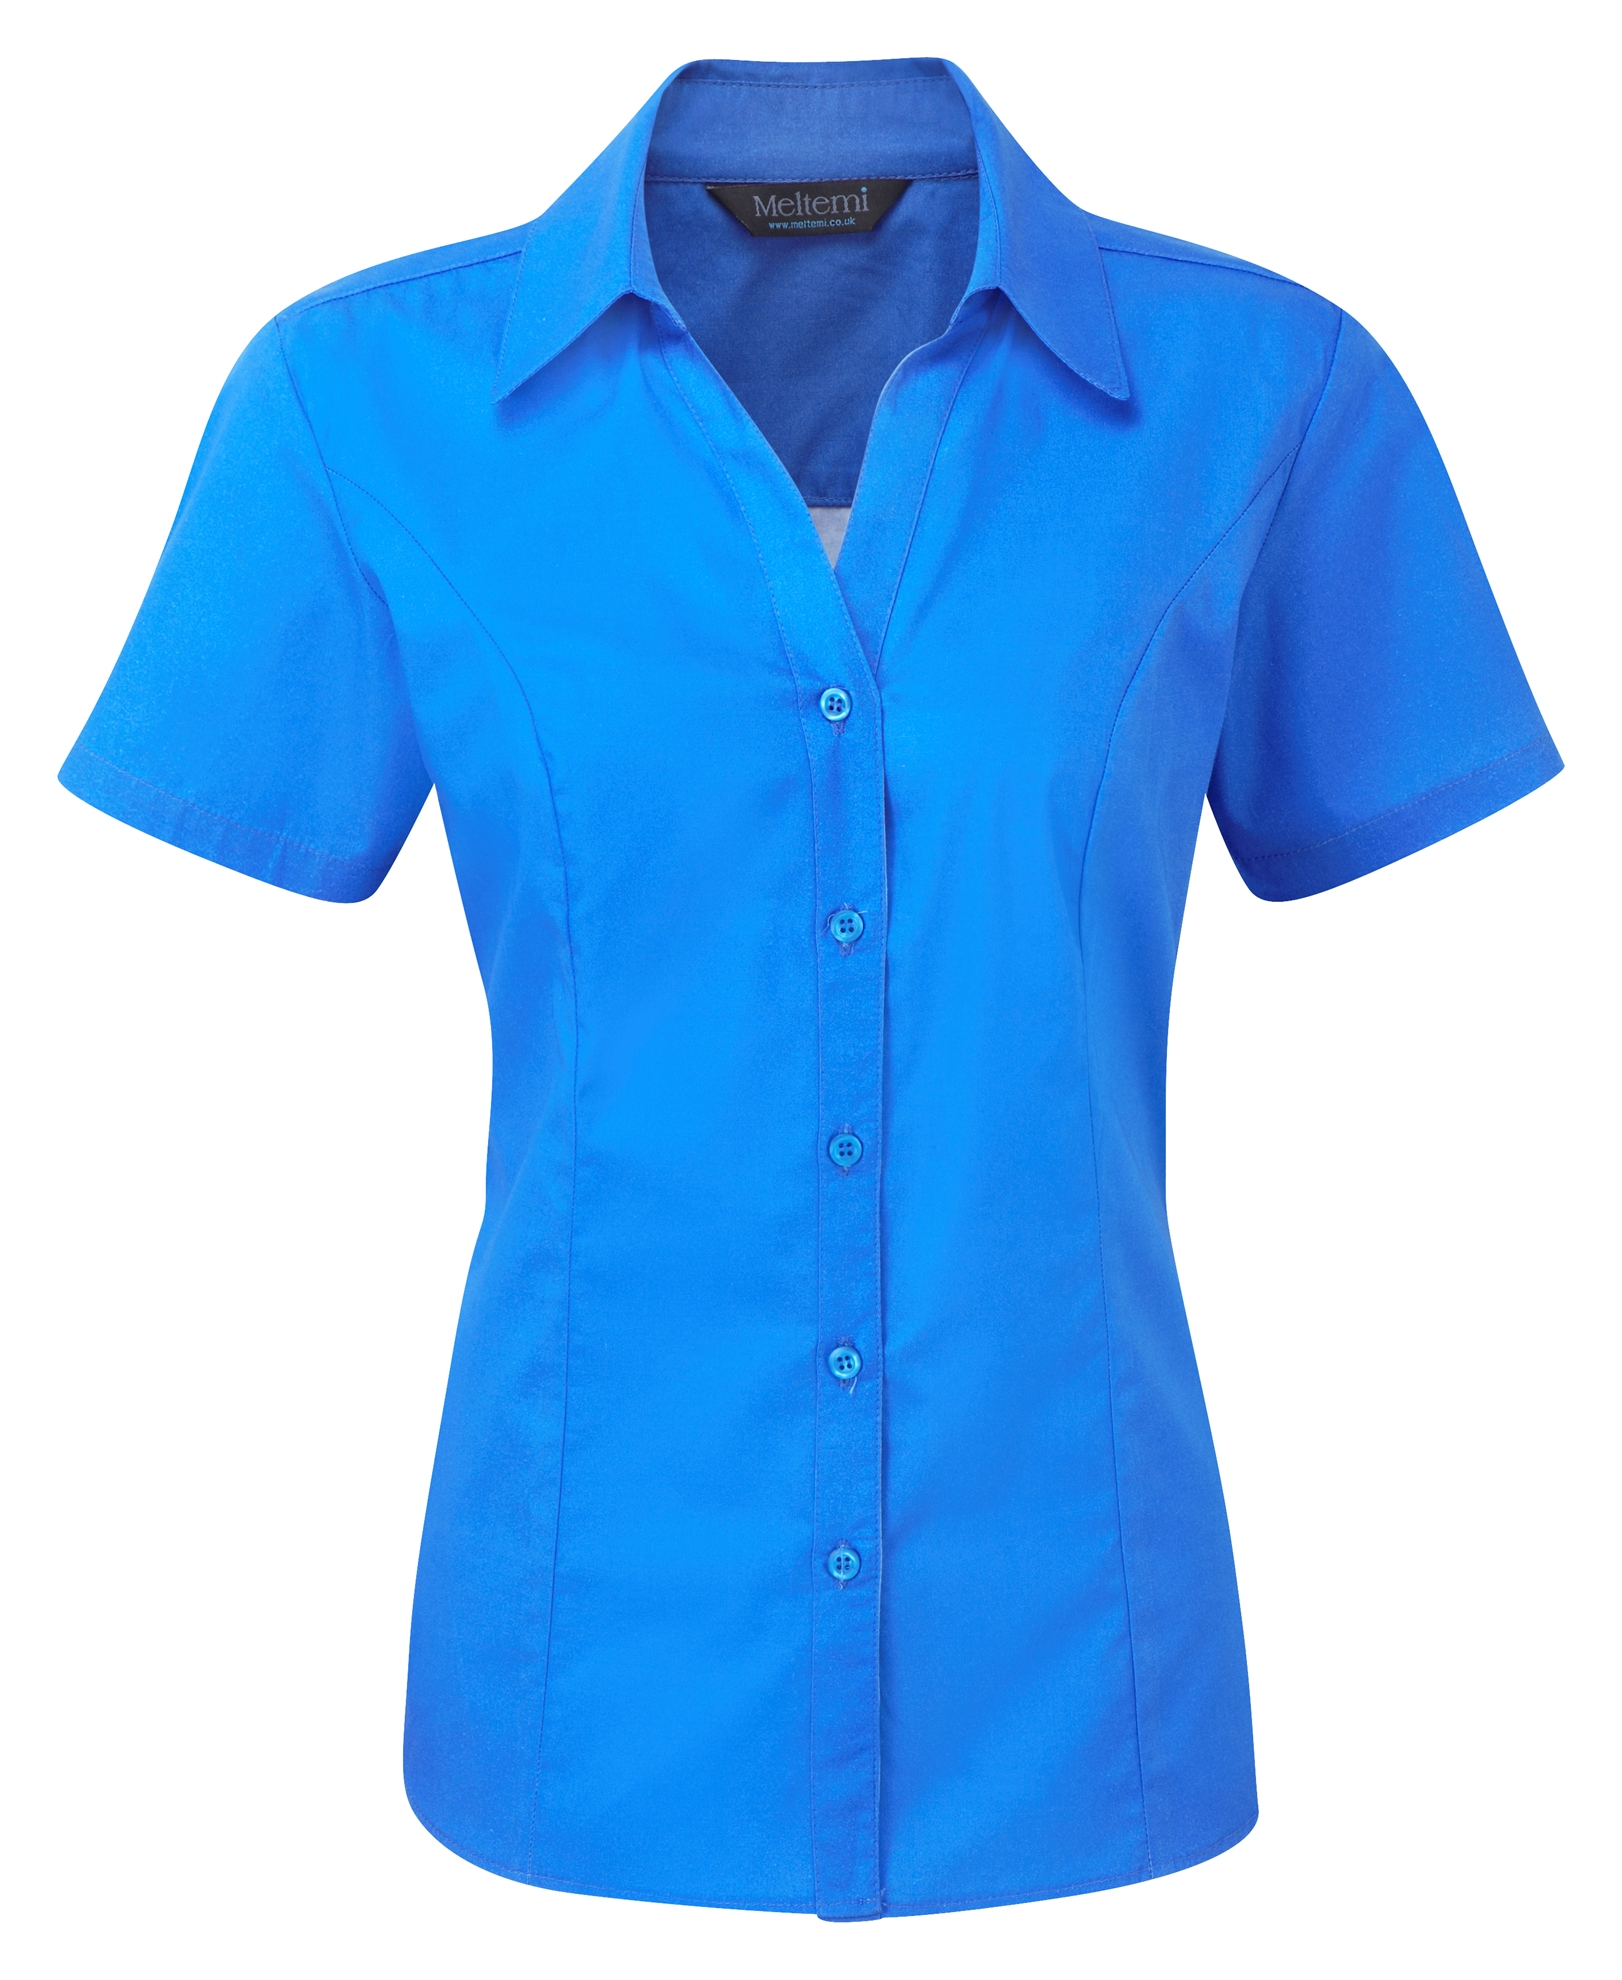 Picture of Semi-Fitted Polycotton Blouse - Plain Azure